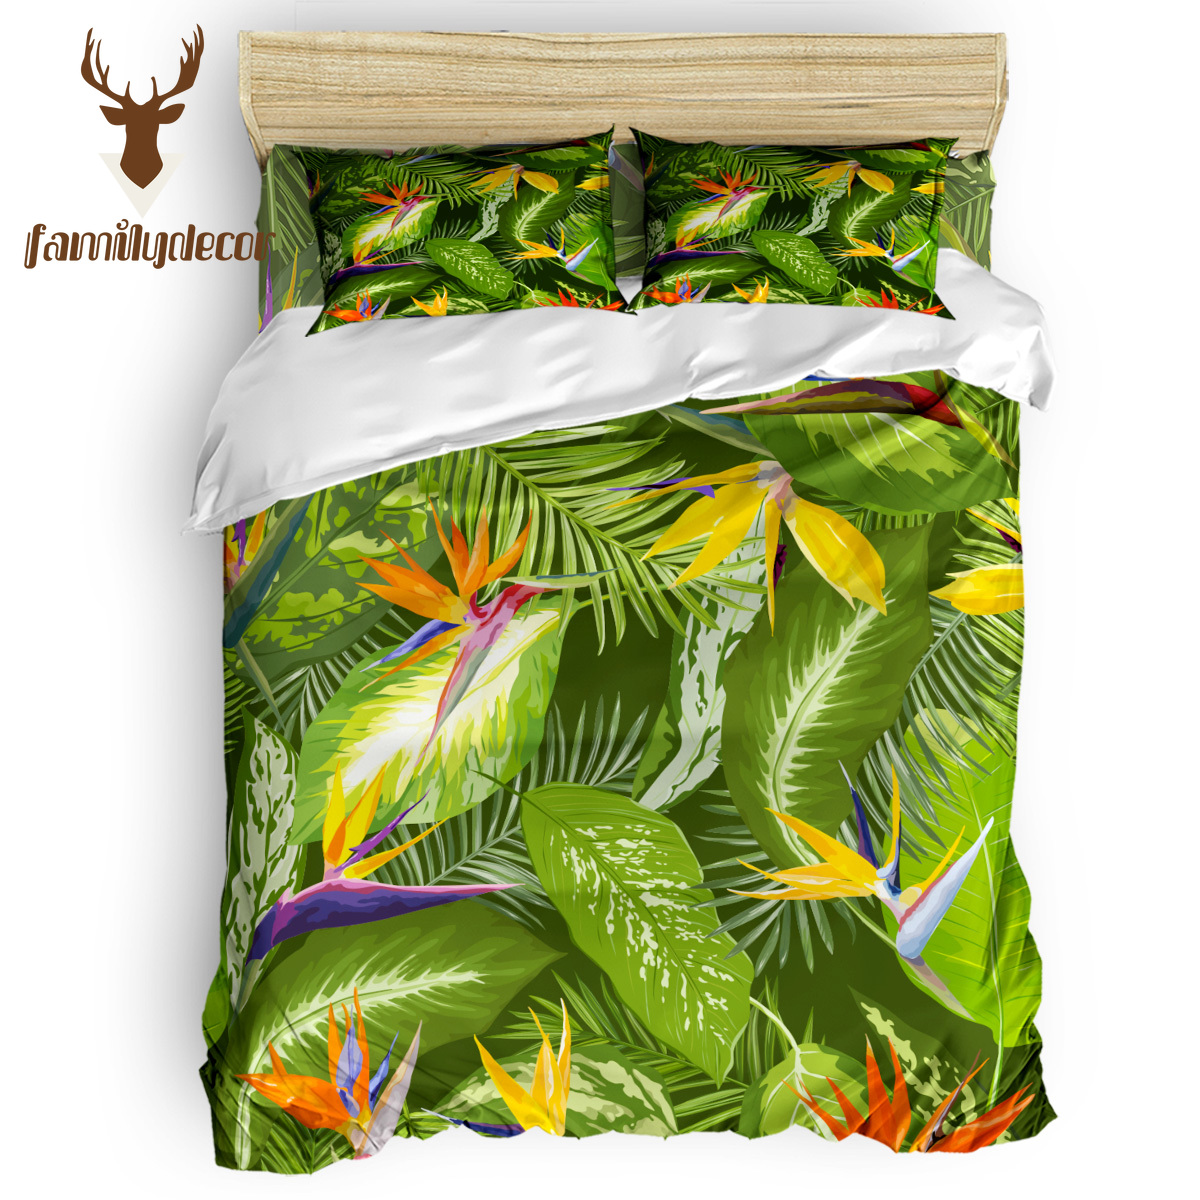 FamilyDecor Hawaii Tropical Palm Leaves Bedding Set Luxury Comforter Bedding Sets 3D King Size Red Blue Cotton DHL Free Shipping